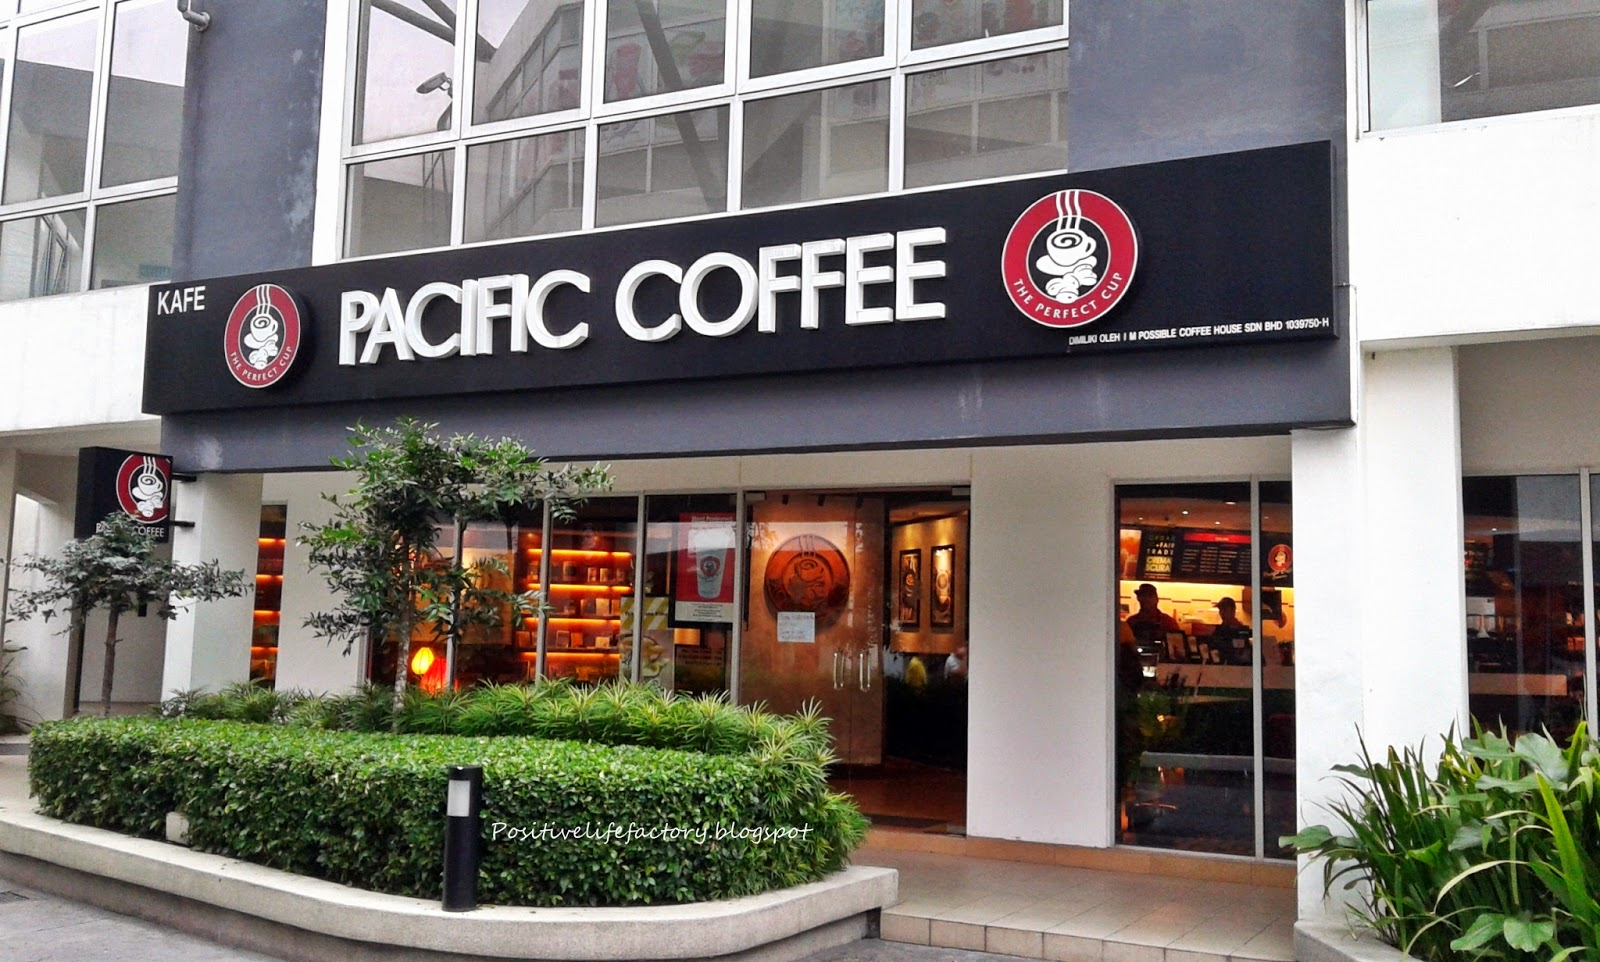 Pacific Coffee Is Founded In Hong Kong 1992 Considered As Young Entrepreneur Business But It Expands Fast To Mainland China Singapore And Malaysia